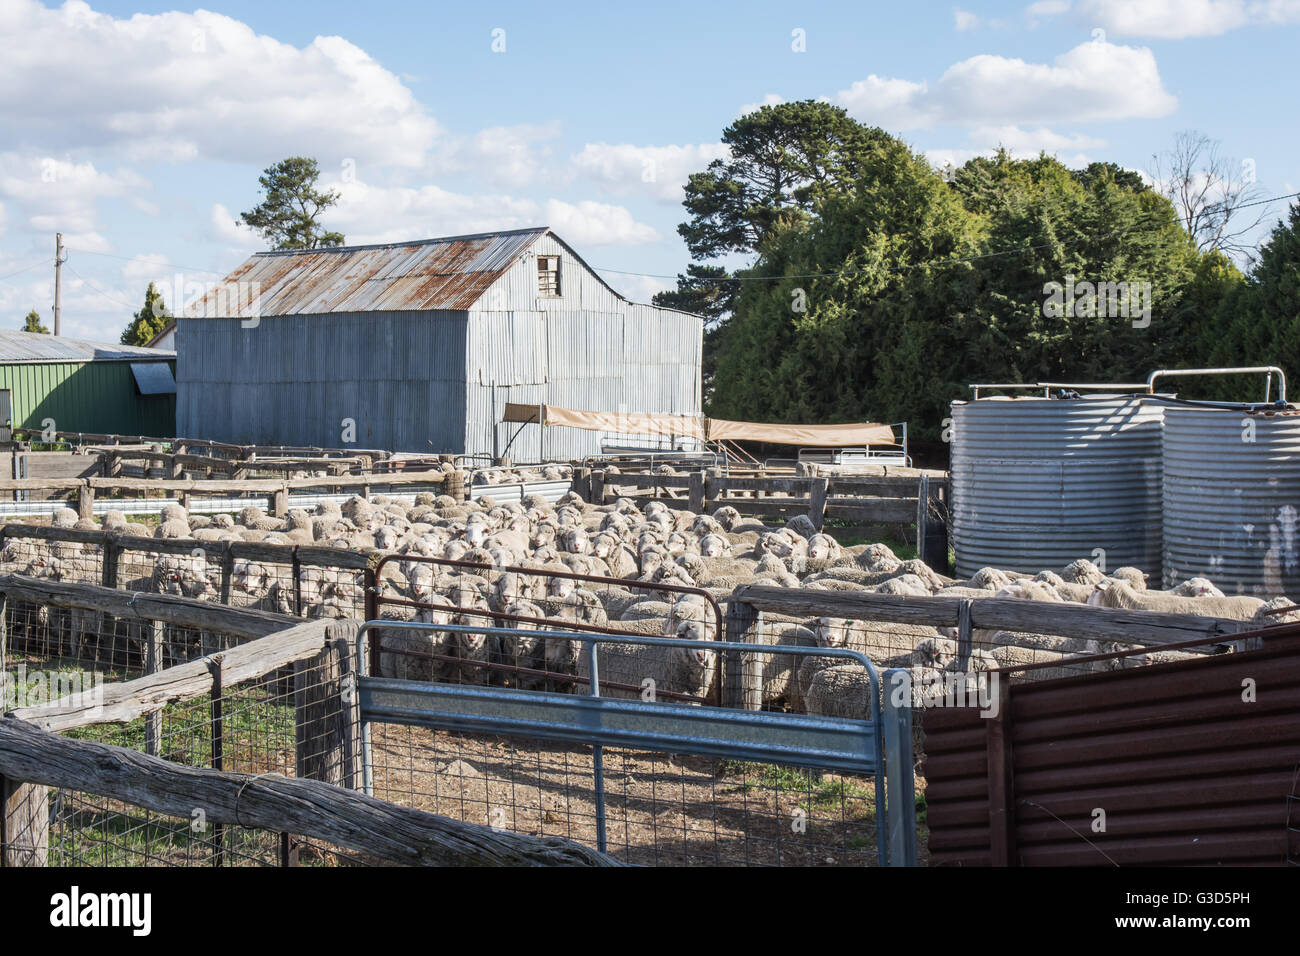 Merino Sheep in Holding Pen ready for worming. - Stock Image